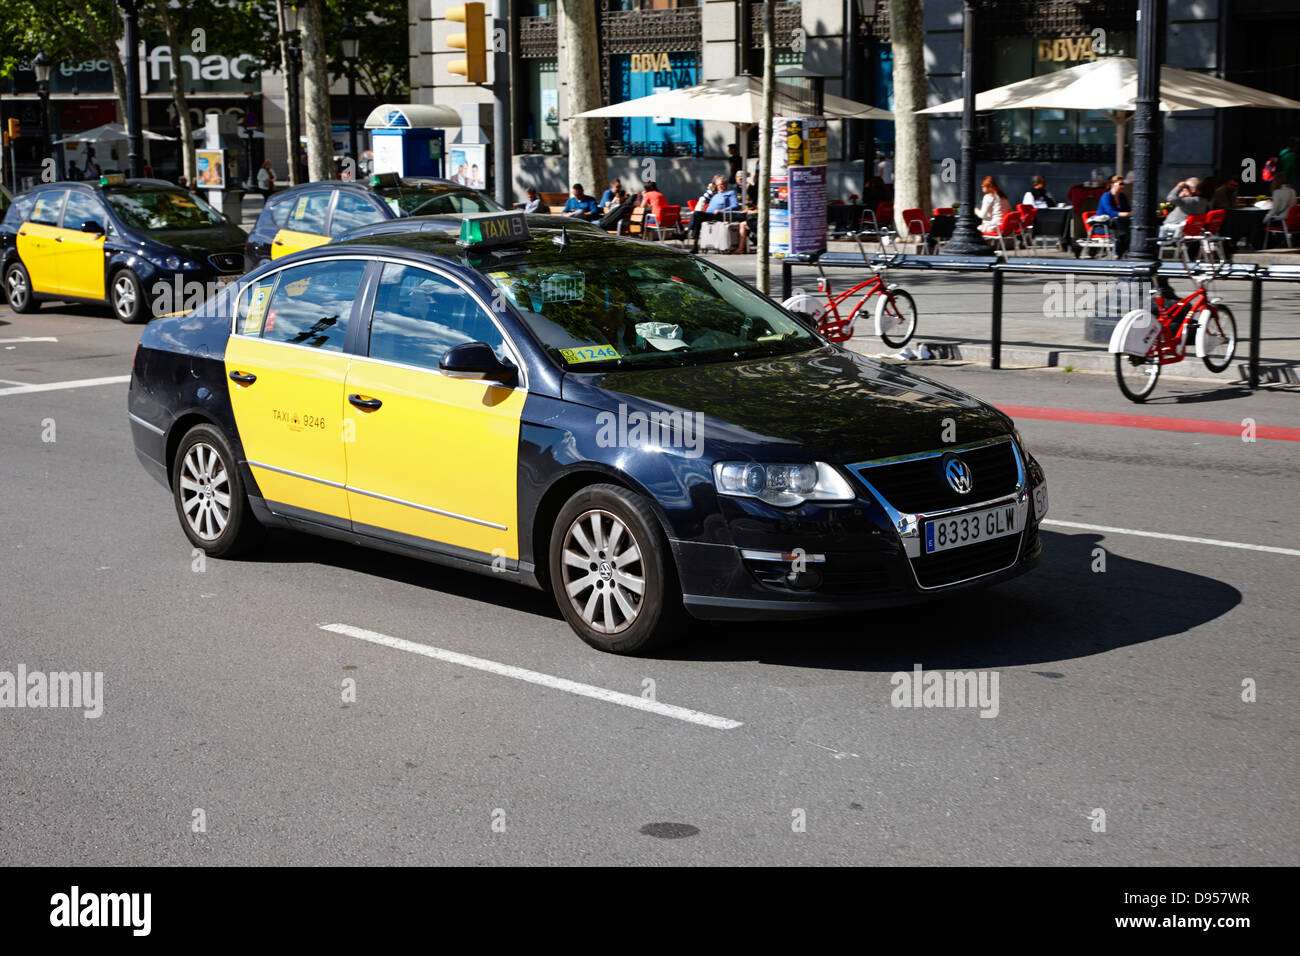 Black and yellow taxi cab in barcelona city centre catalonia spain stock photo royalty free - Cab in barcelona ...